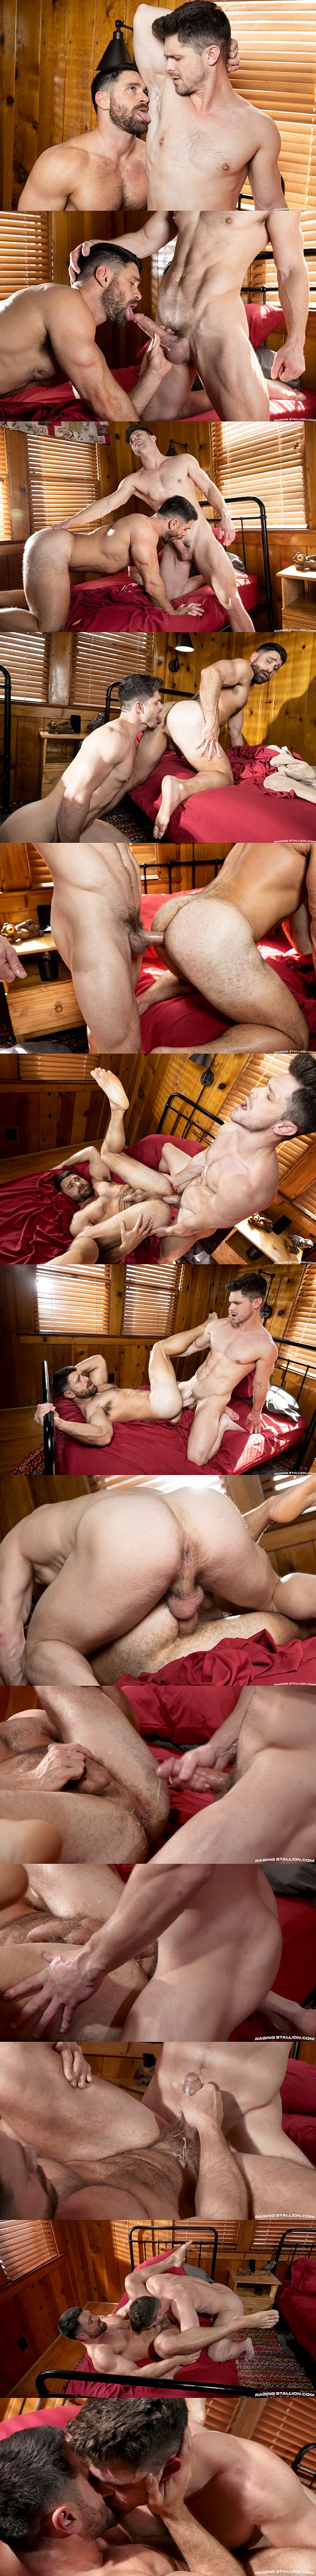 Veteran gay porn star Devin Franco barebacks hairy stud Beau Butler before he breeds Beau and fucks the cum out of Beau in Mountain Tops at Ragingstallion